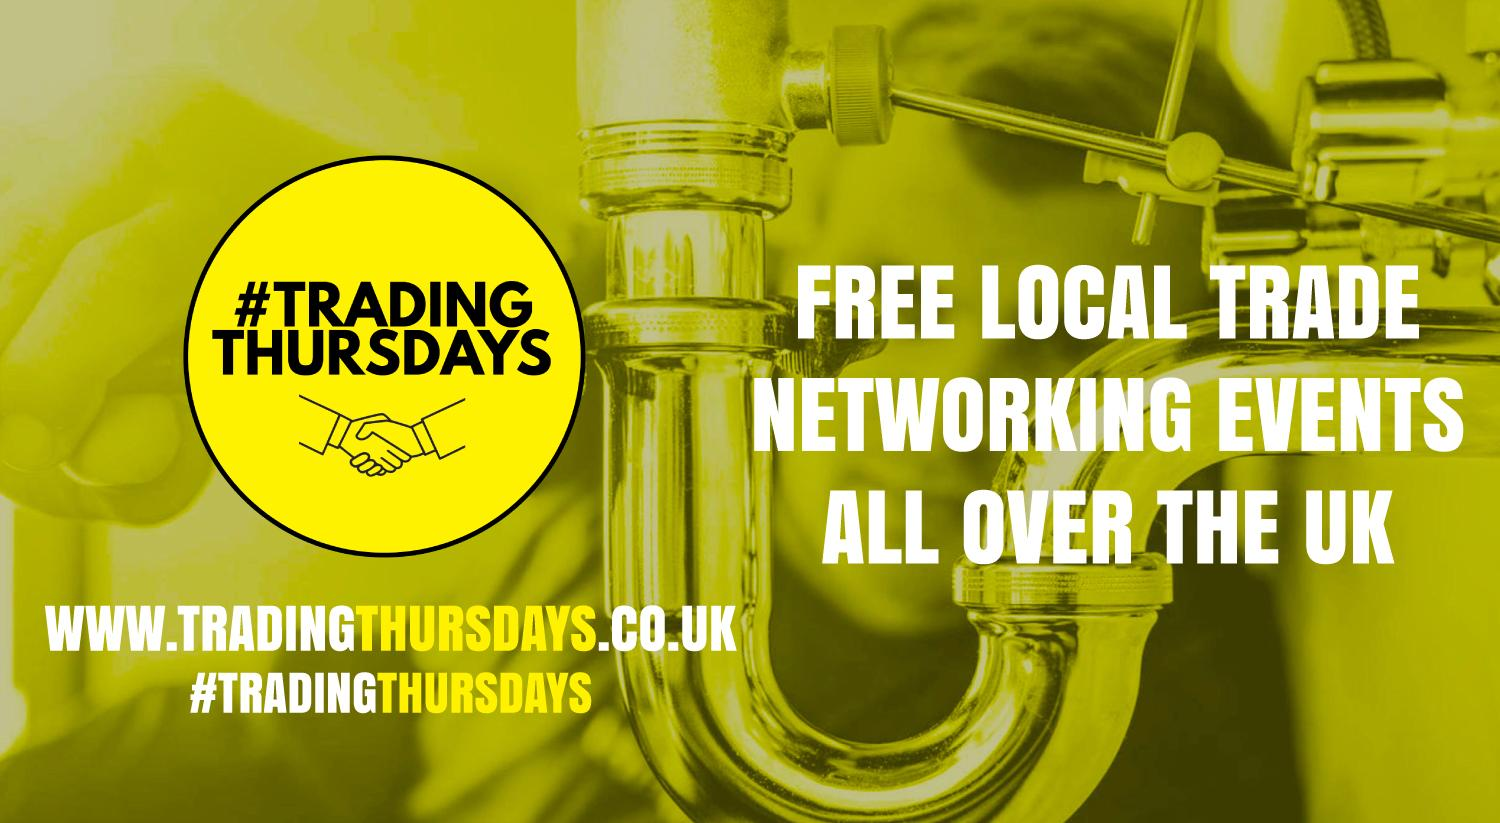 Trading Thursdays! Free networking event for traders in Harwich